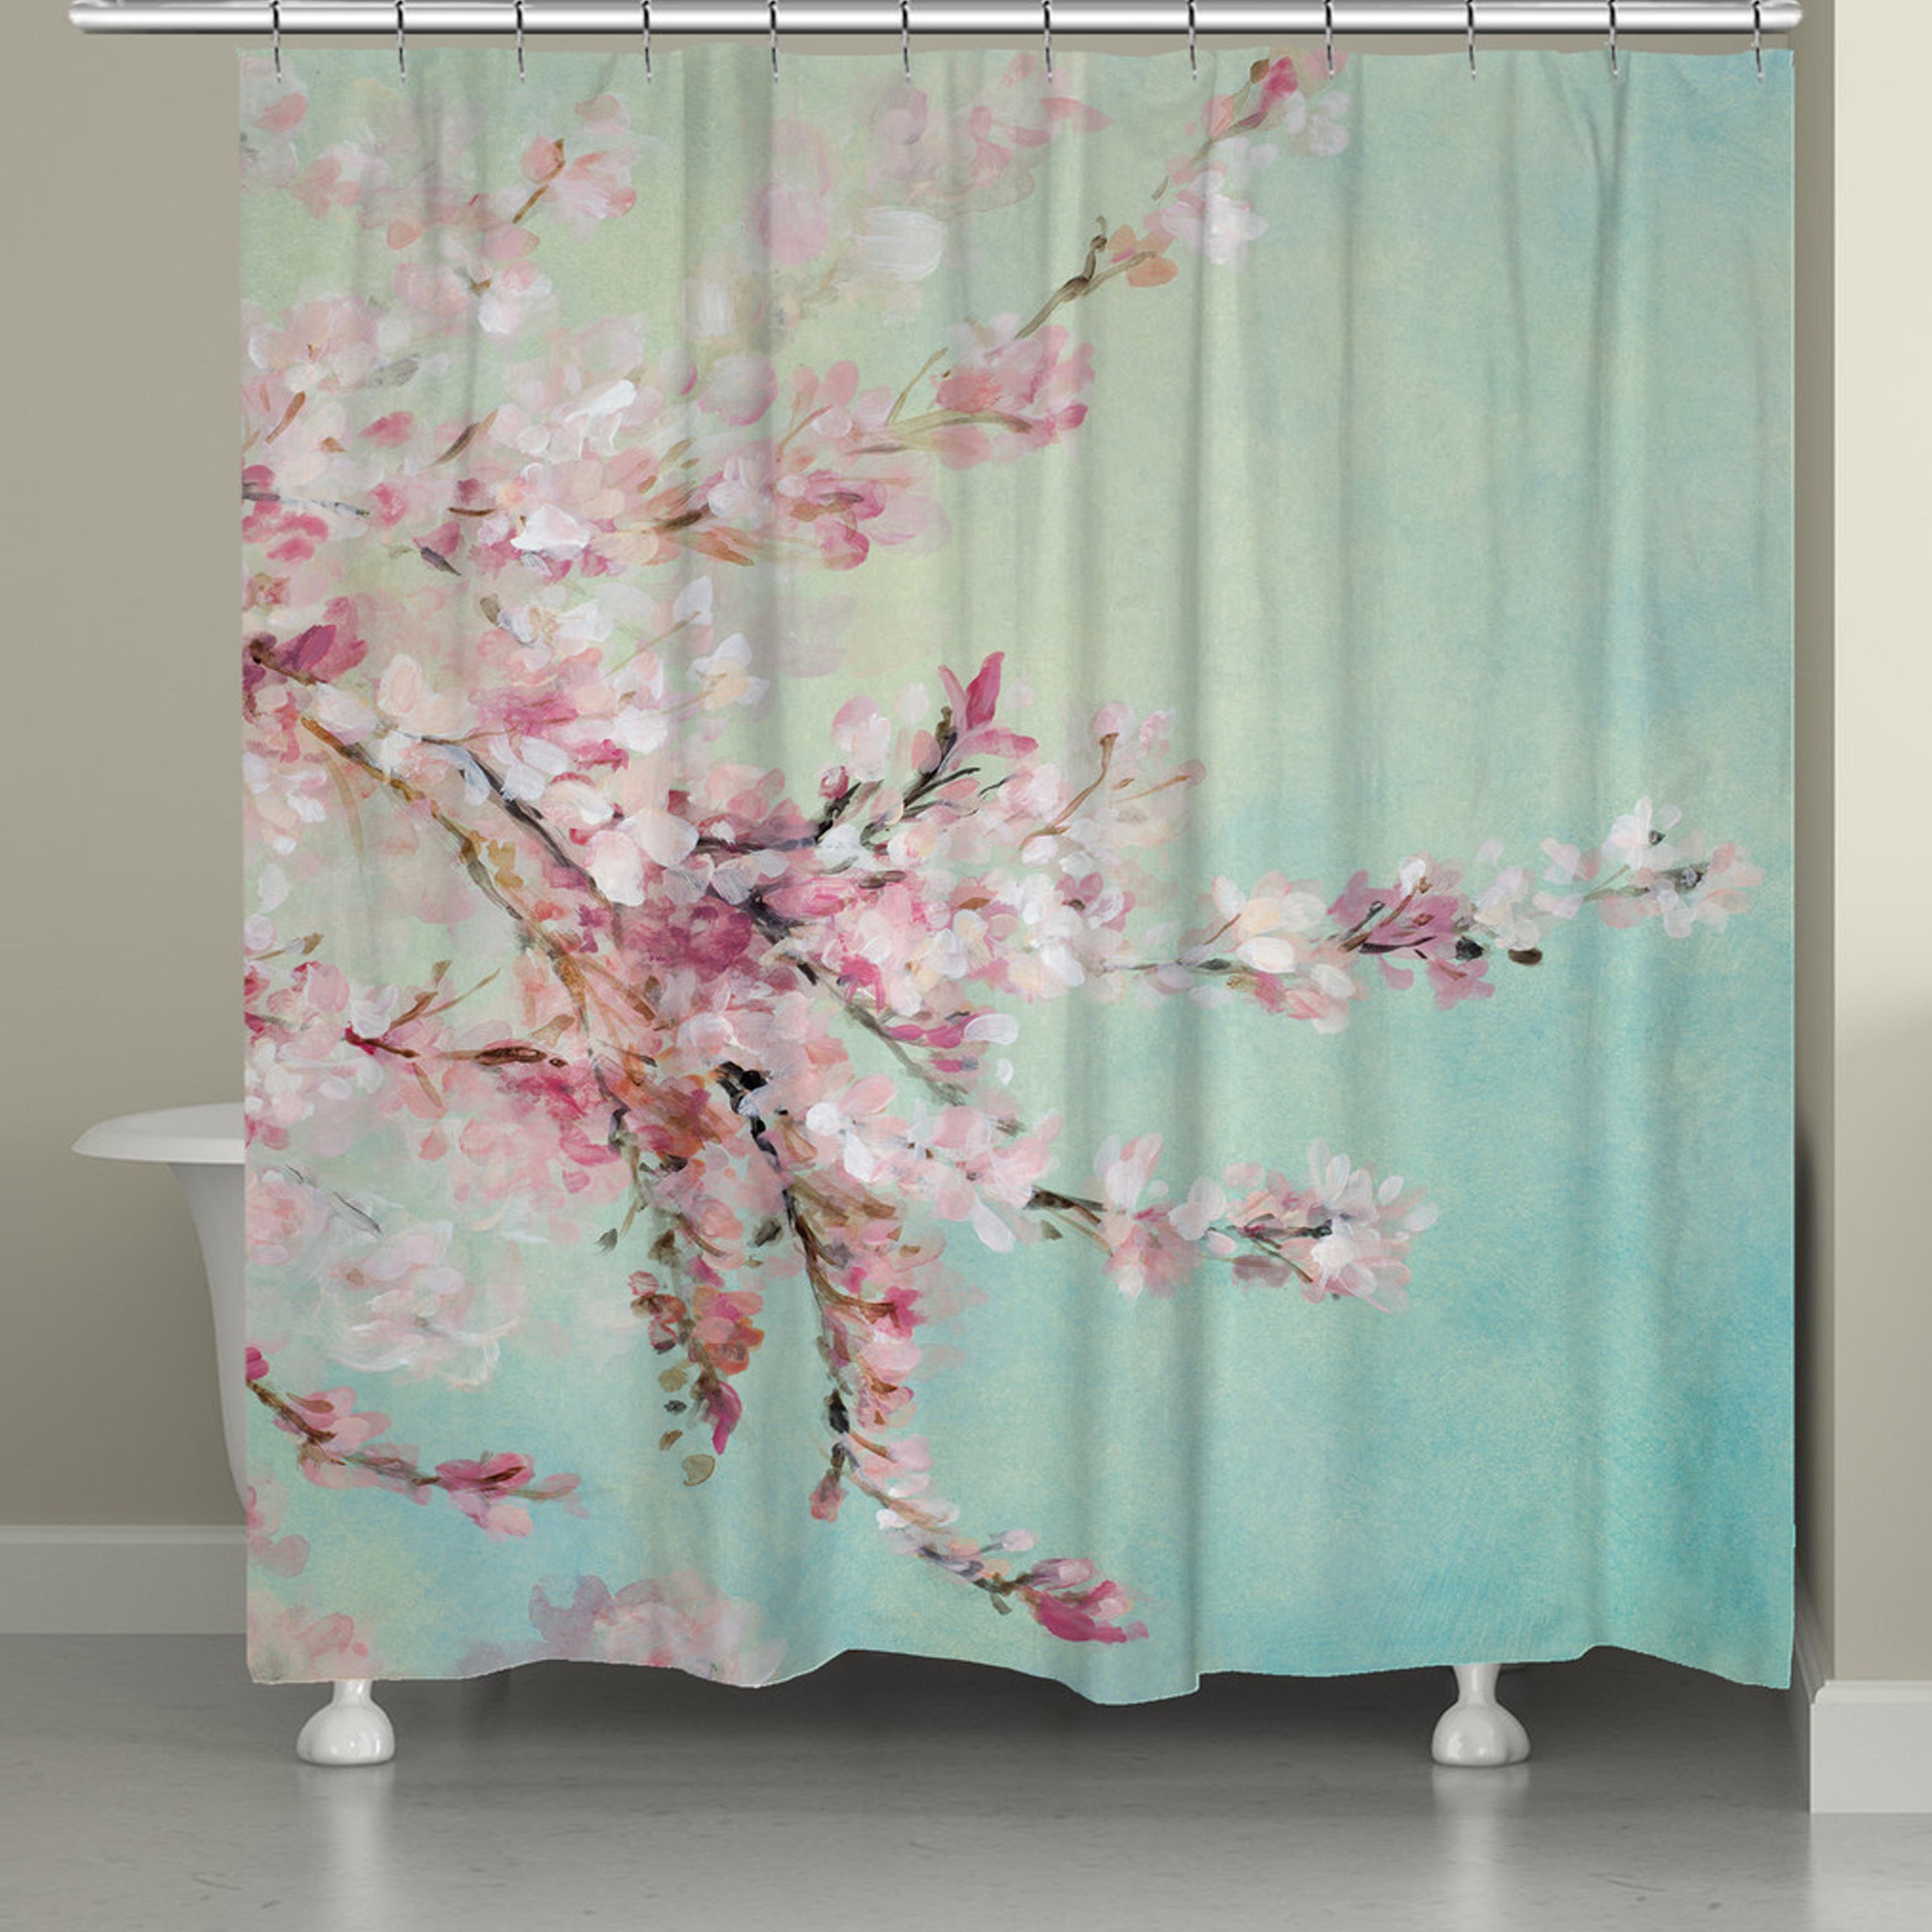 Laural Home Cherry Blossom Blooms Shower Curtain - Free Shipping Today -  Overstock.com - 18337220